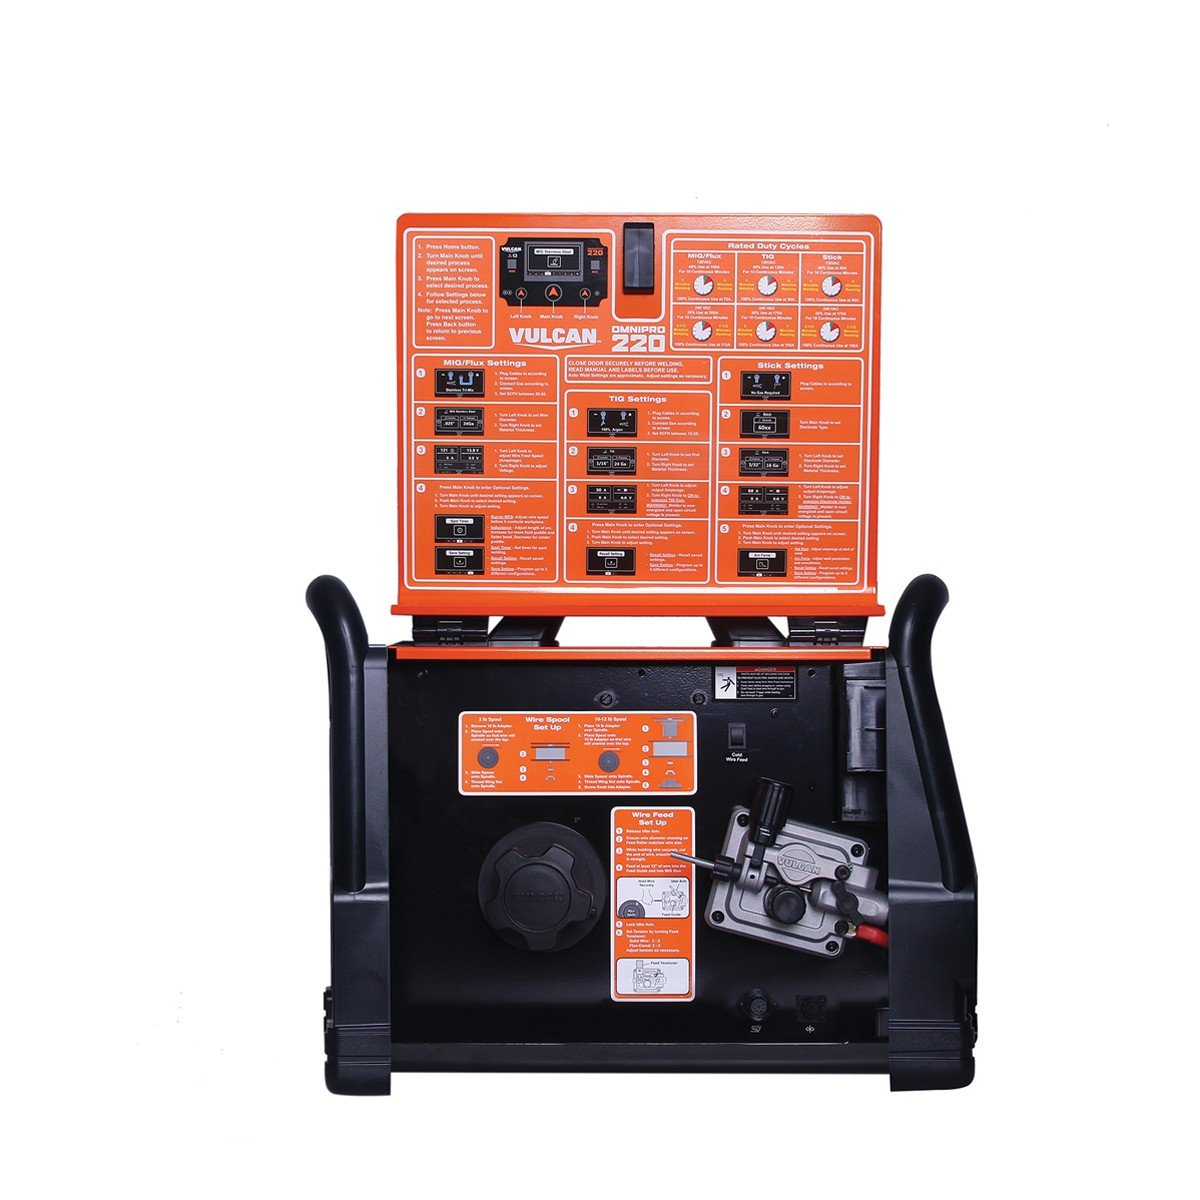 Vulcan OmniPro 220 Multiprocess Welder with 120/240 Volt Input by Vulcan (Image #8)